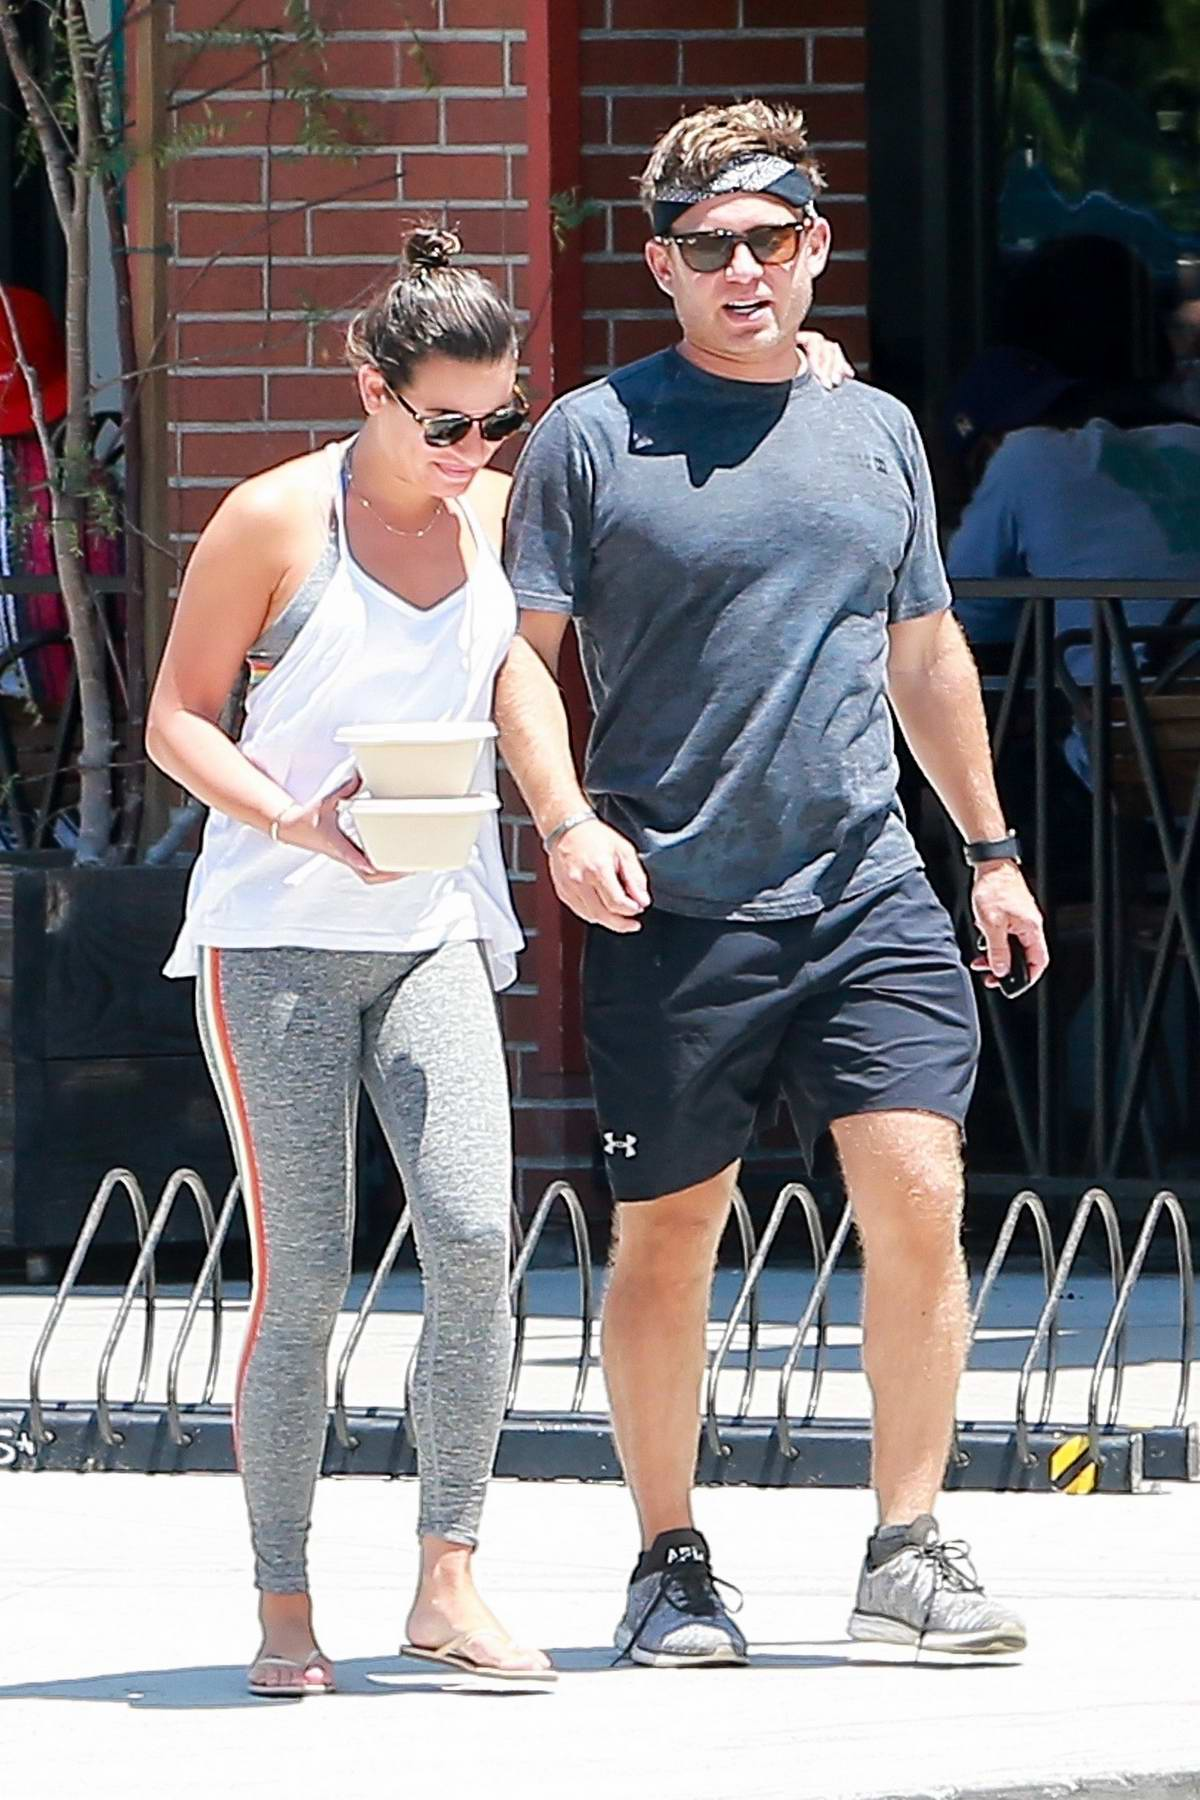 lea michele and husband zandy reich grab lunch at cafe